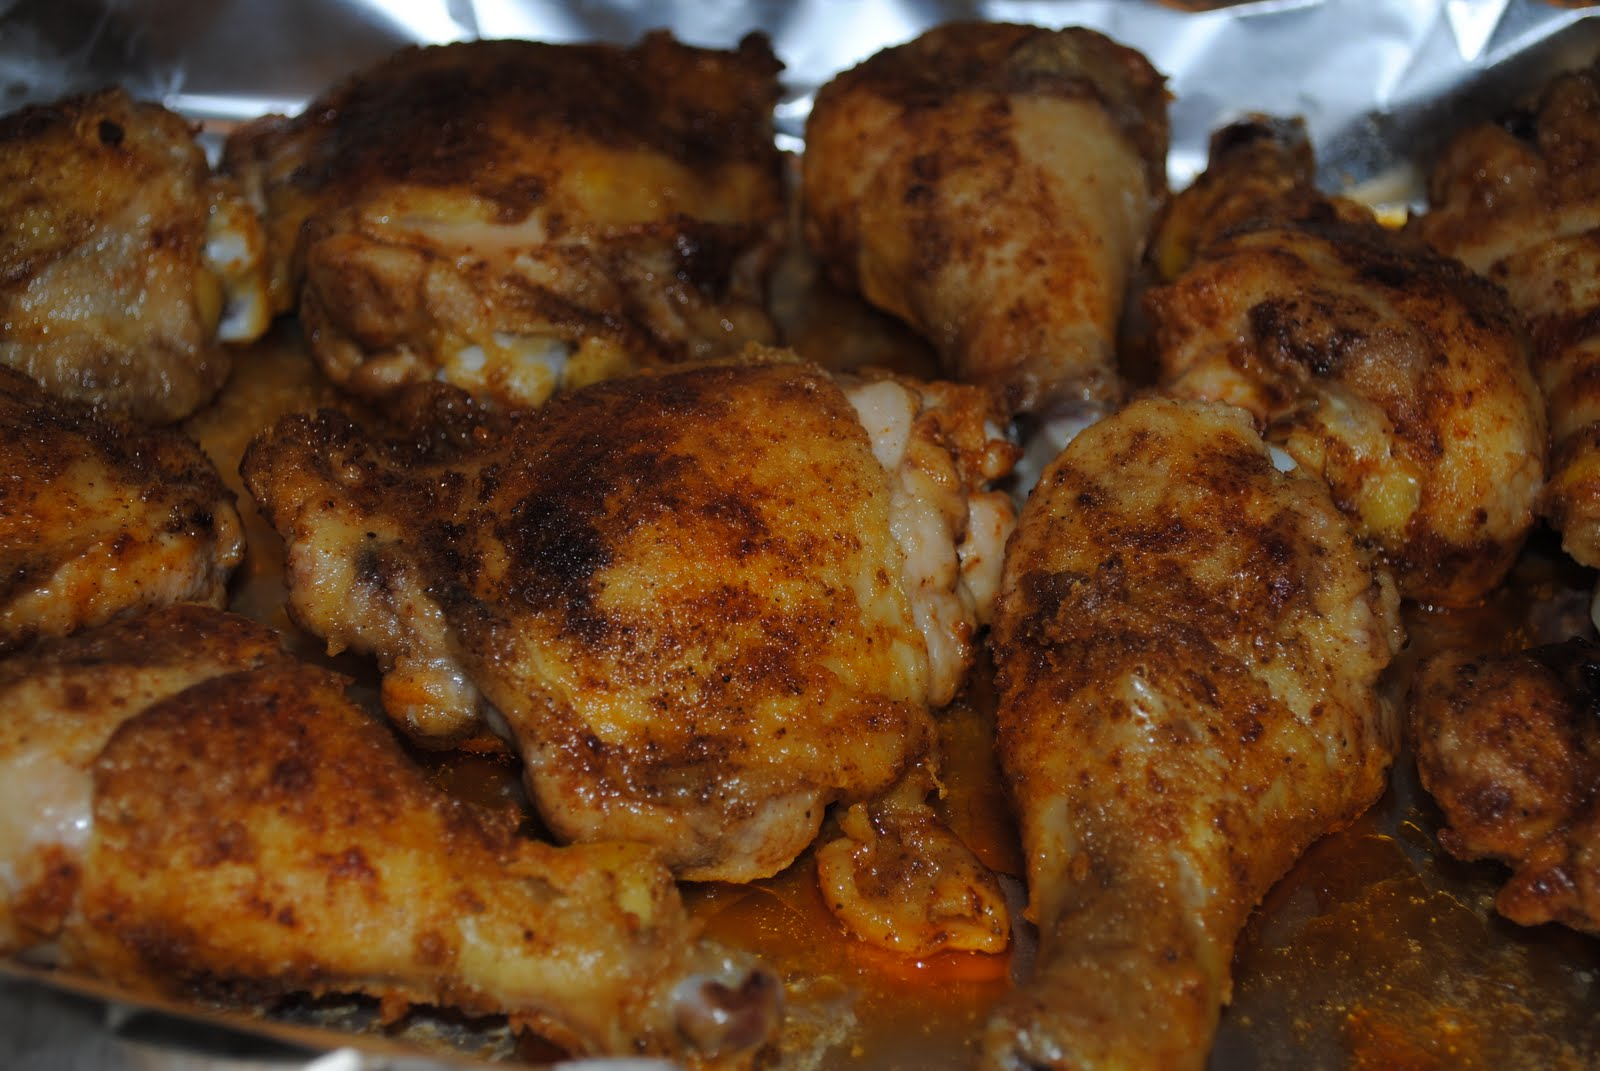 What's Cooking?: Oven baked chicken